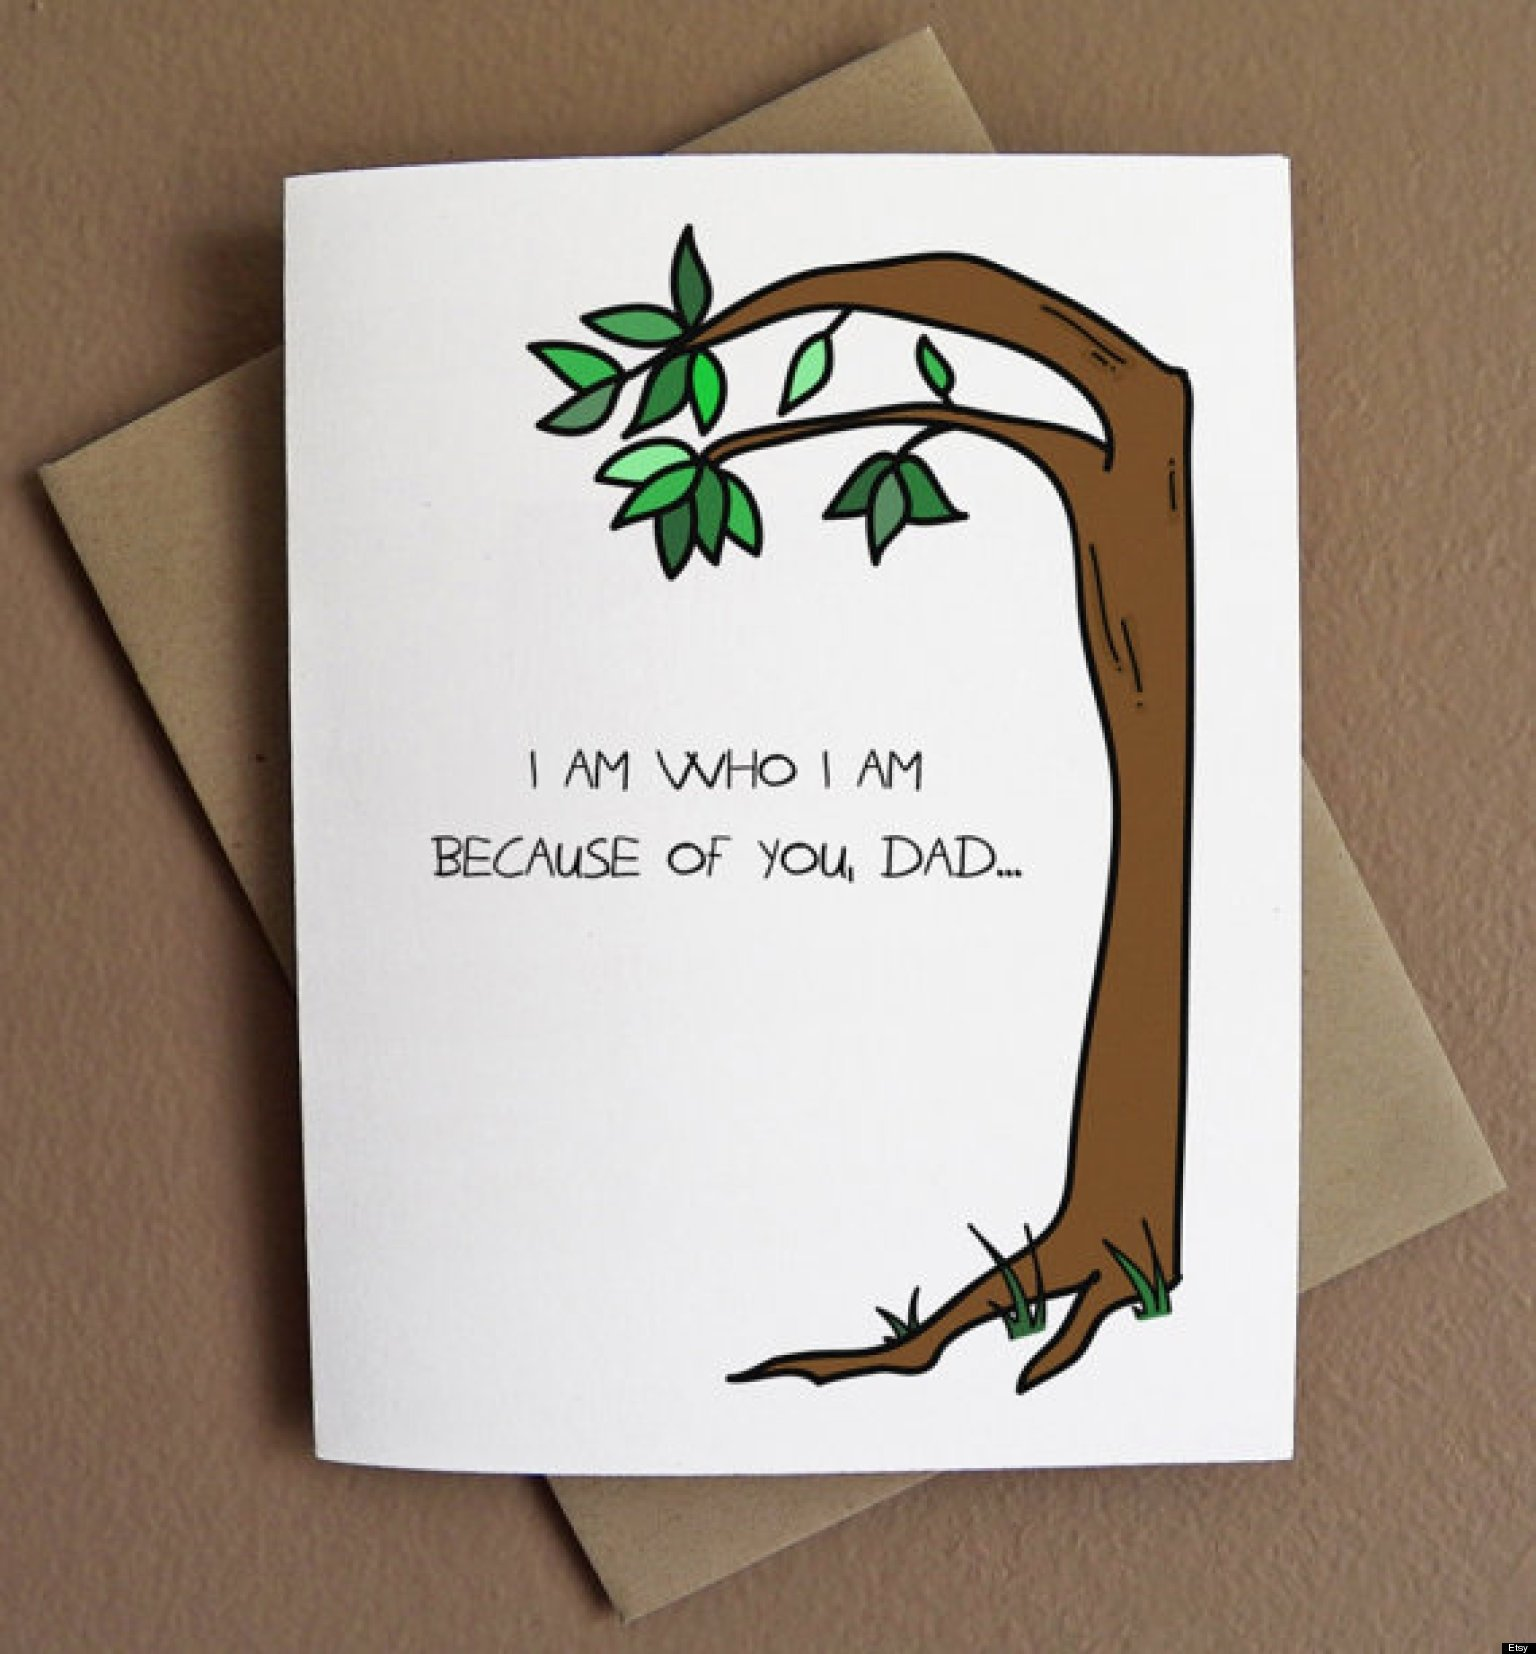 10 Most Recommended Gift Ideas For Father In Law fathers day cards 15 picks for dad without cliches huffpost